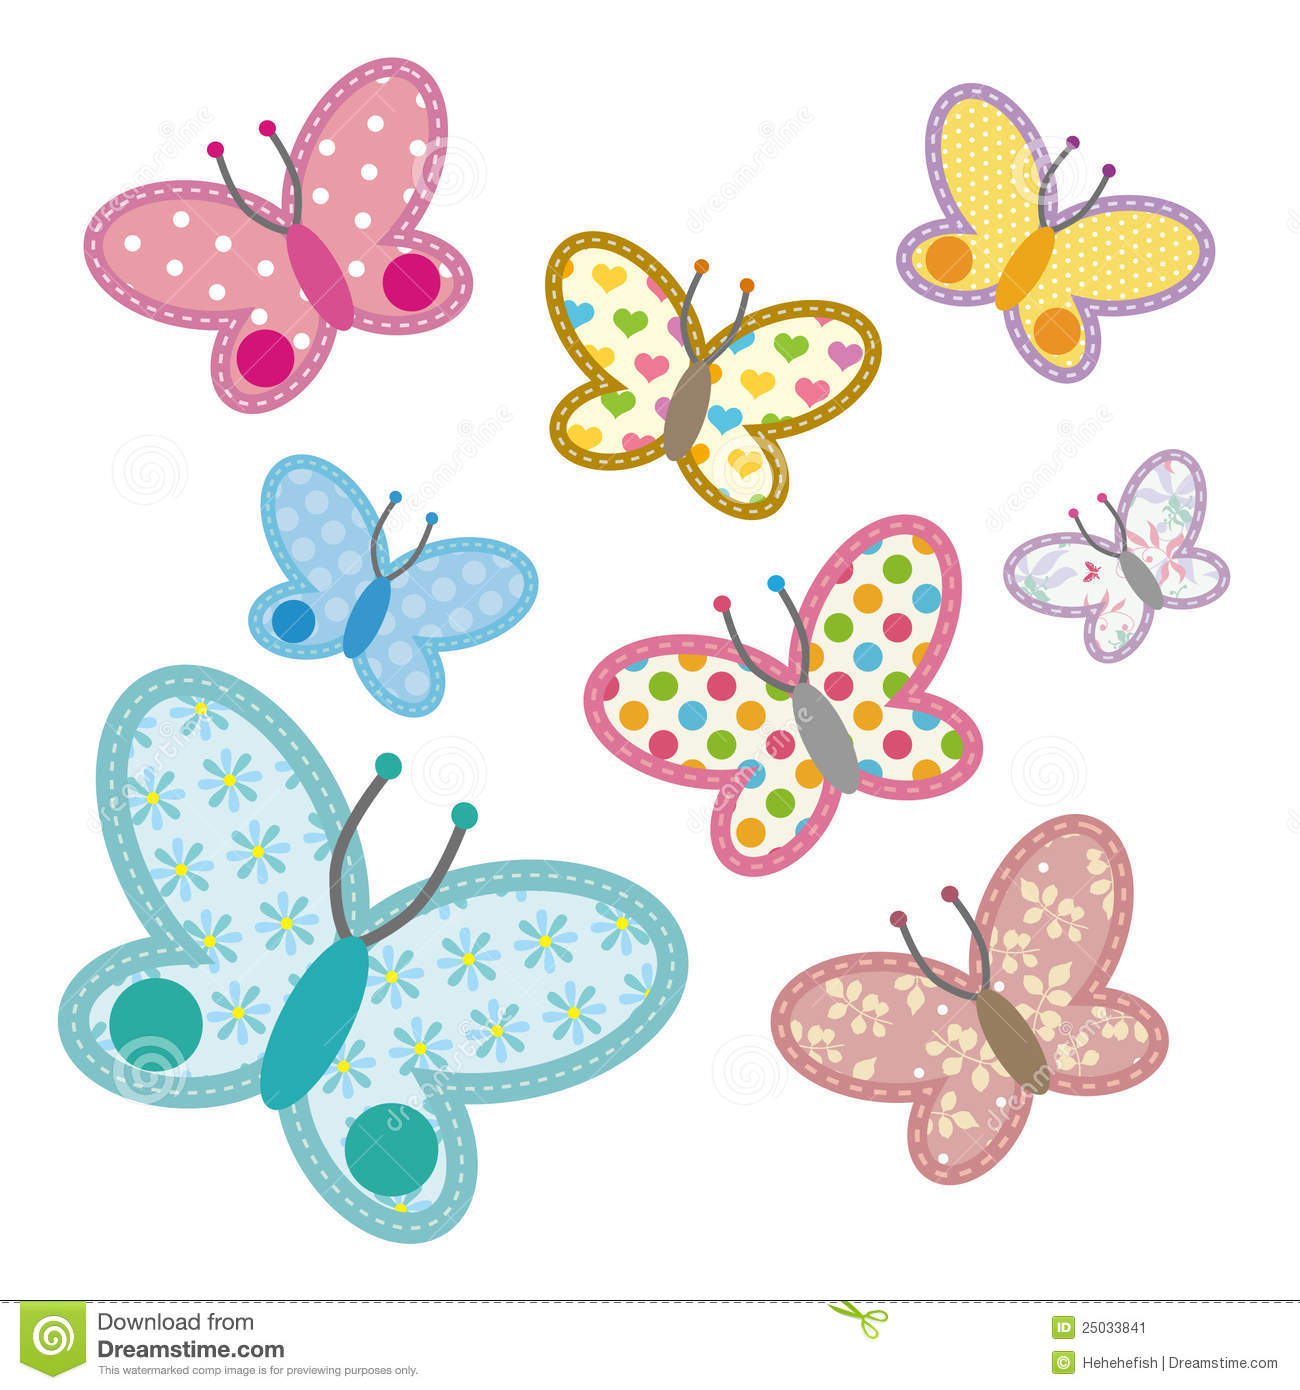 Applique Butterfly Design Free